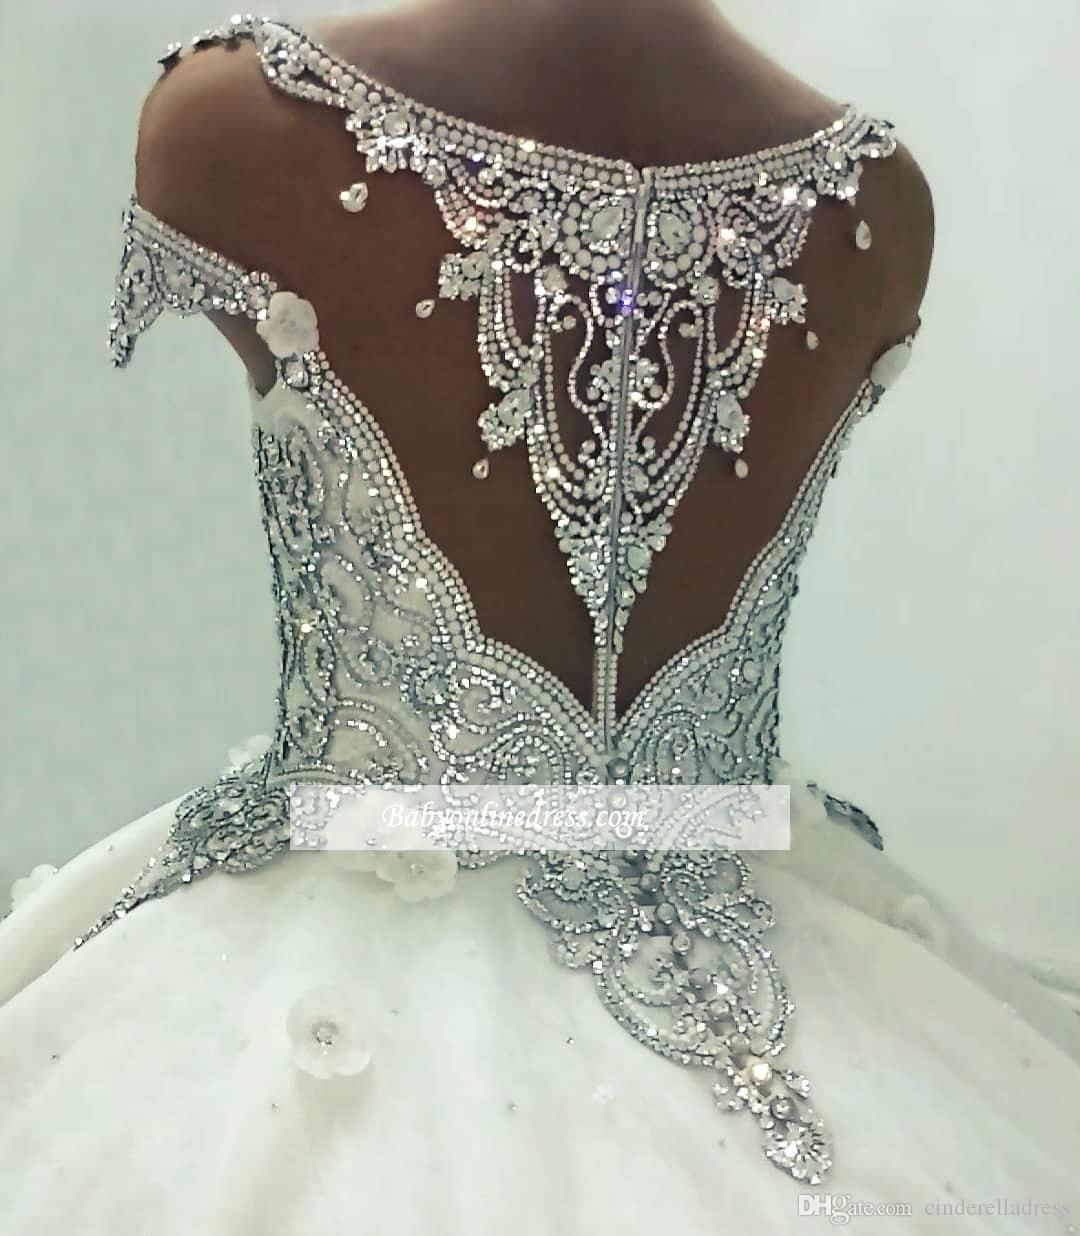 Luxury Real Images Cap Sleeves Ball Gown Wedding Dresses 2019 Shiny Crystals Sparkly Sequin Rhinesto Short Bridal Gown Bridal Ball Gown Ball Gown Wedding Dress [ 1236 x 1080 Pixel ]